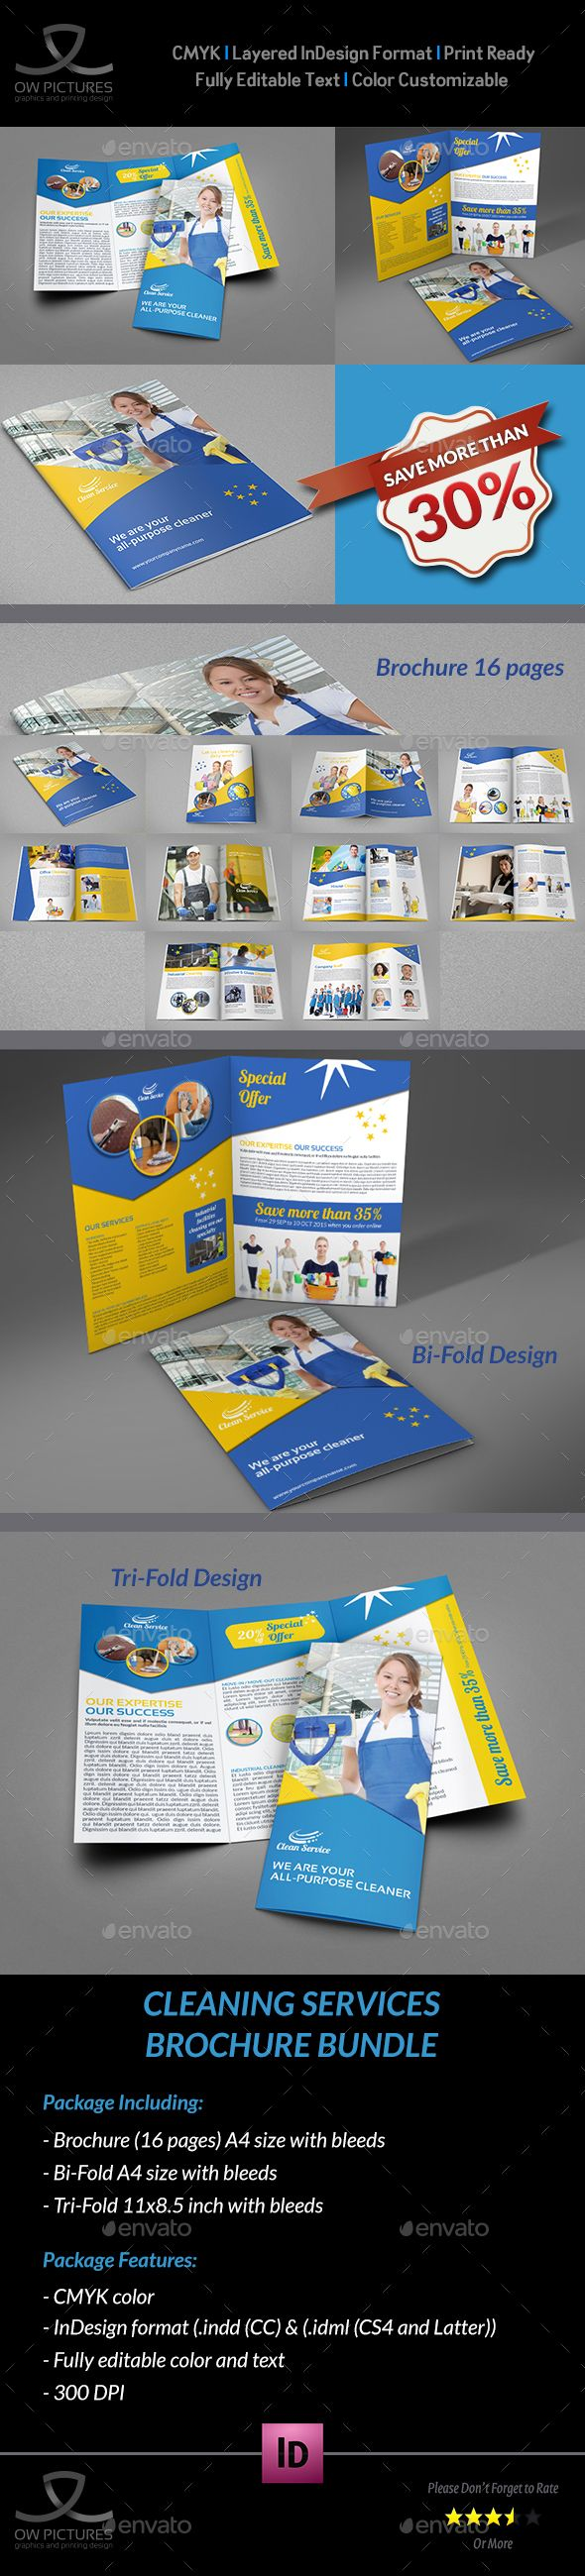 Cleaning Services Brochure Bundle Template  Brochures Tri Fold